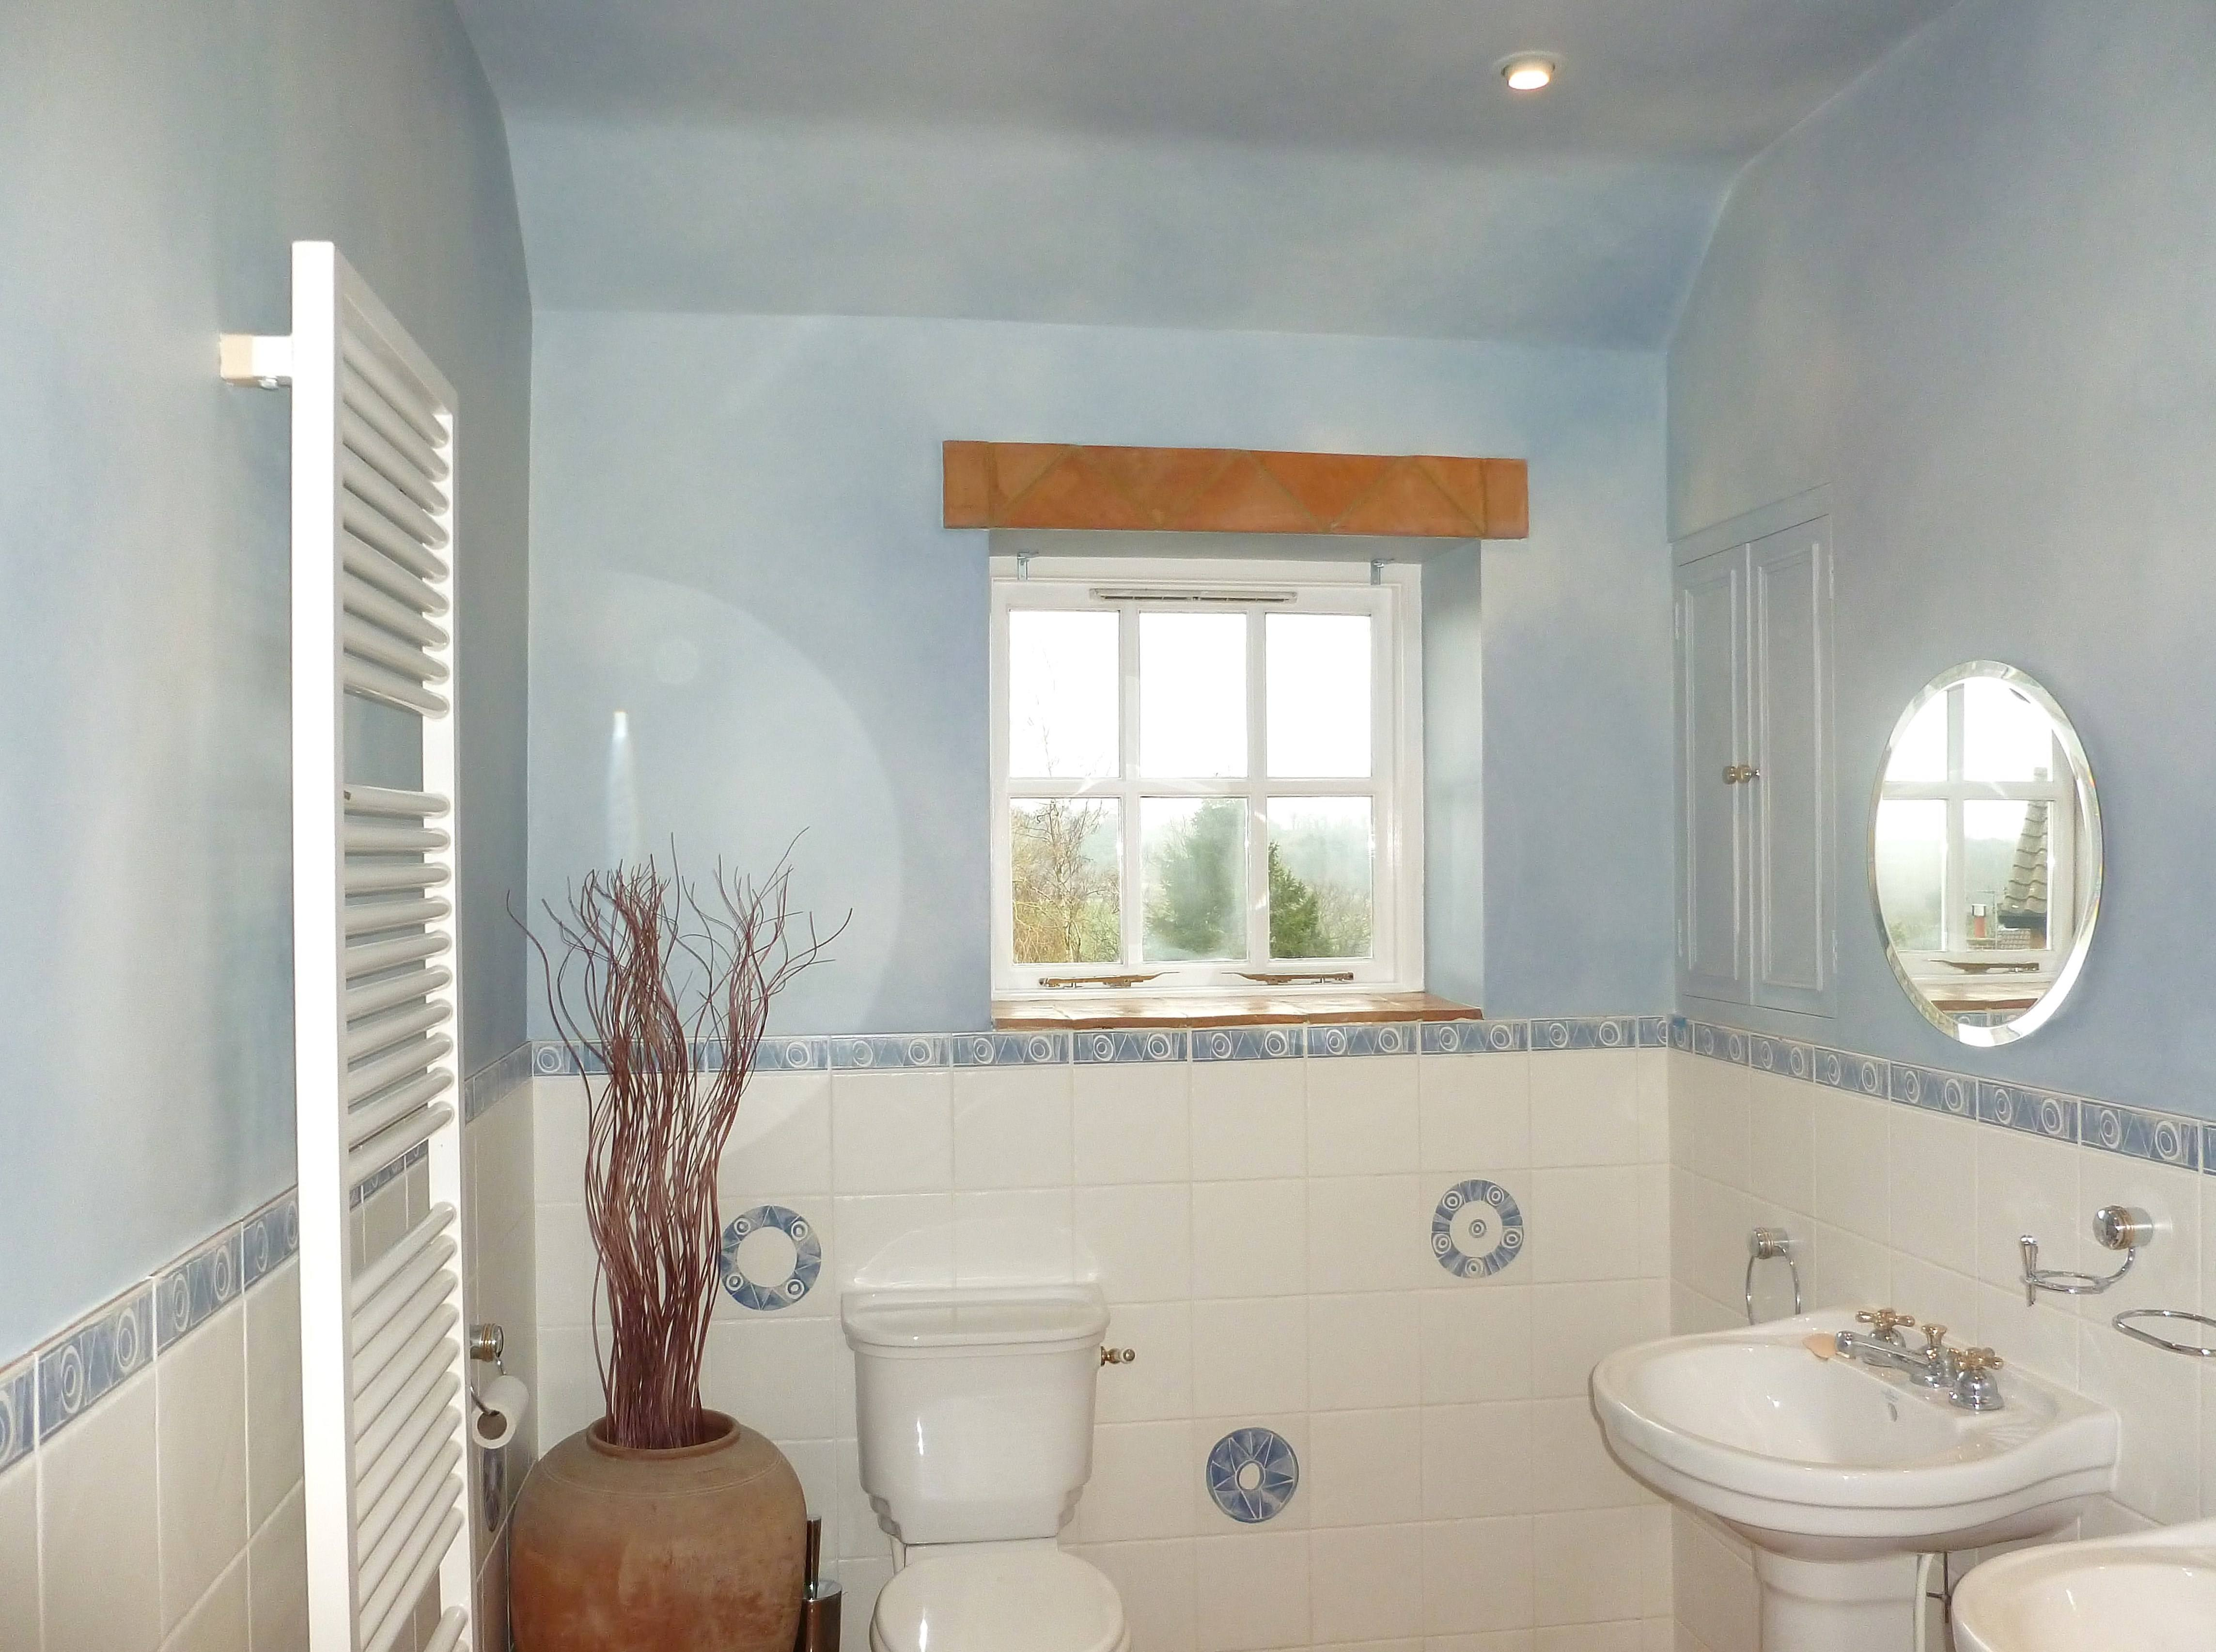 Paint Effect On Walls In Harrogate, How To Clean Painted Bathroom Walls